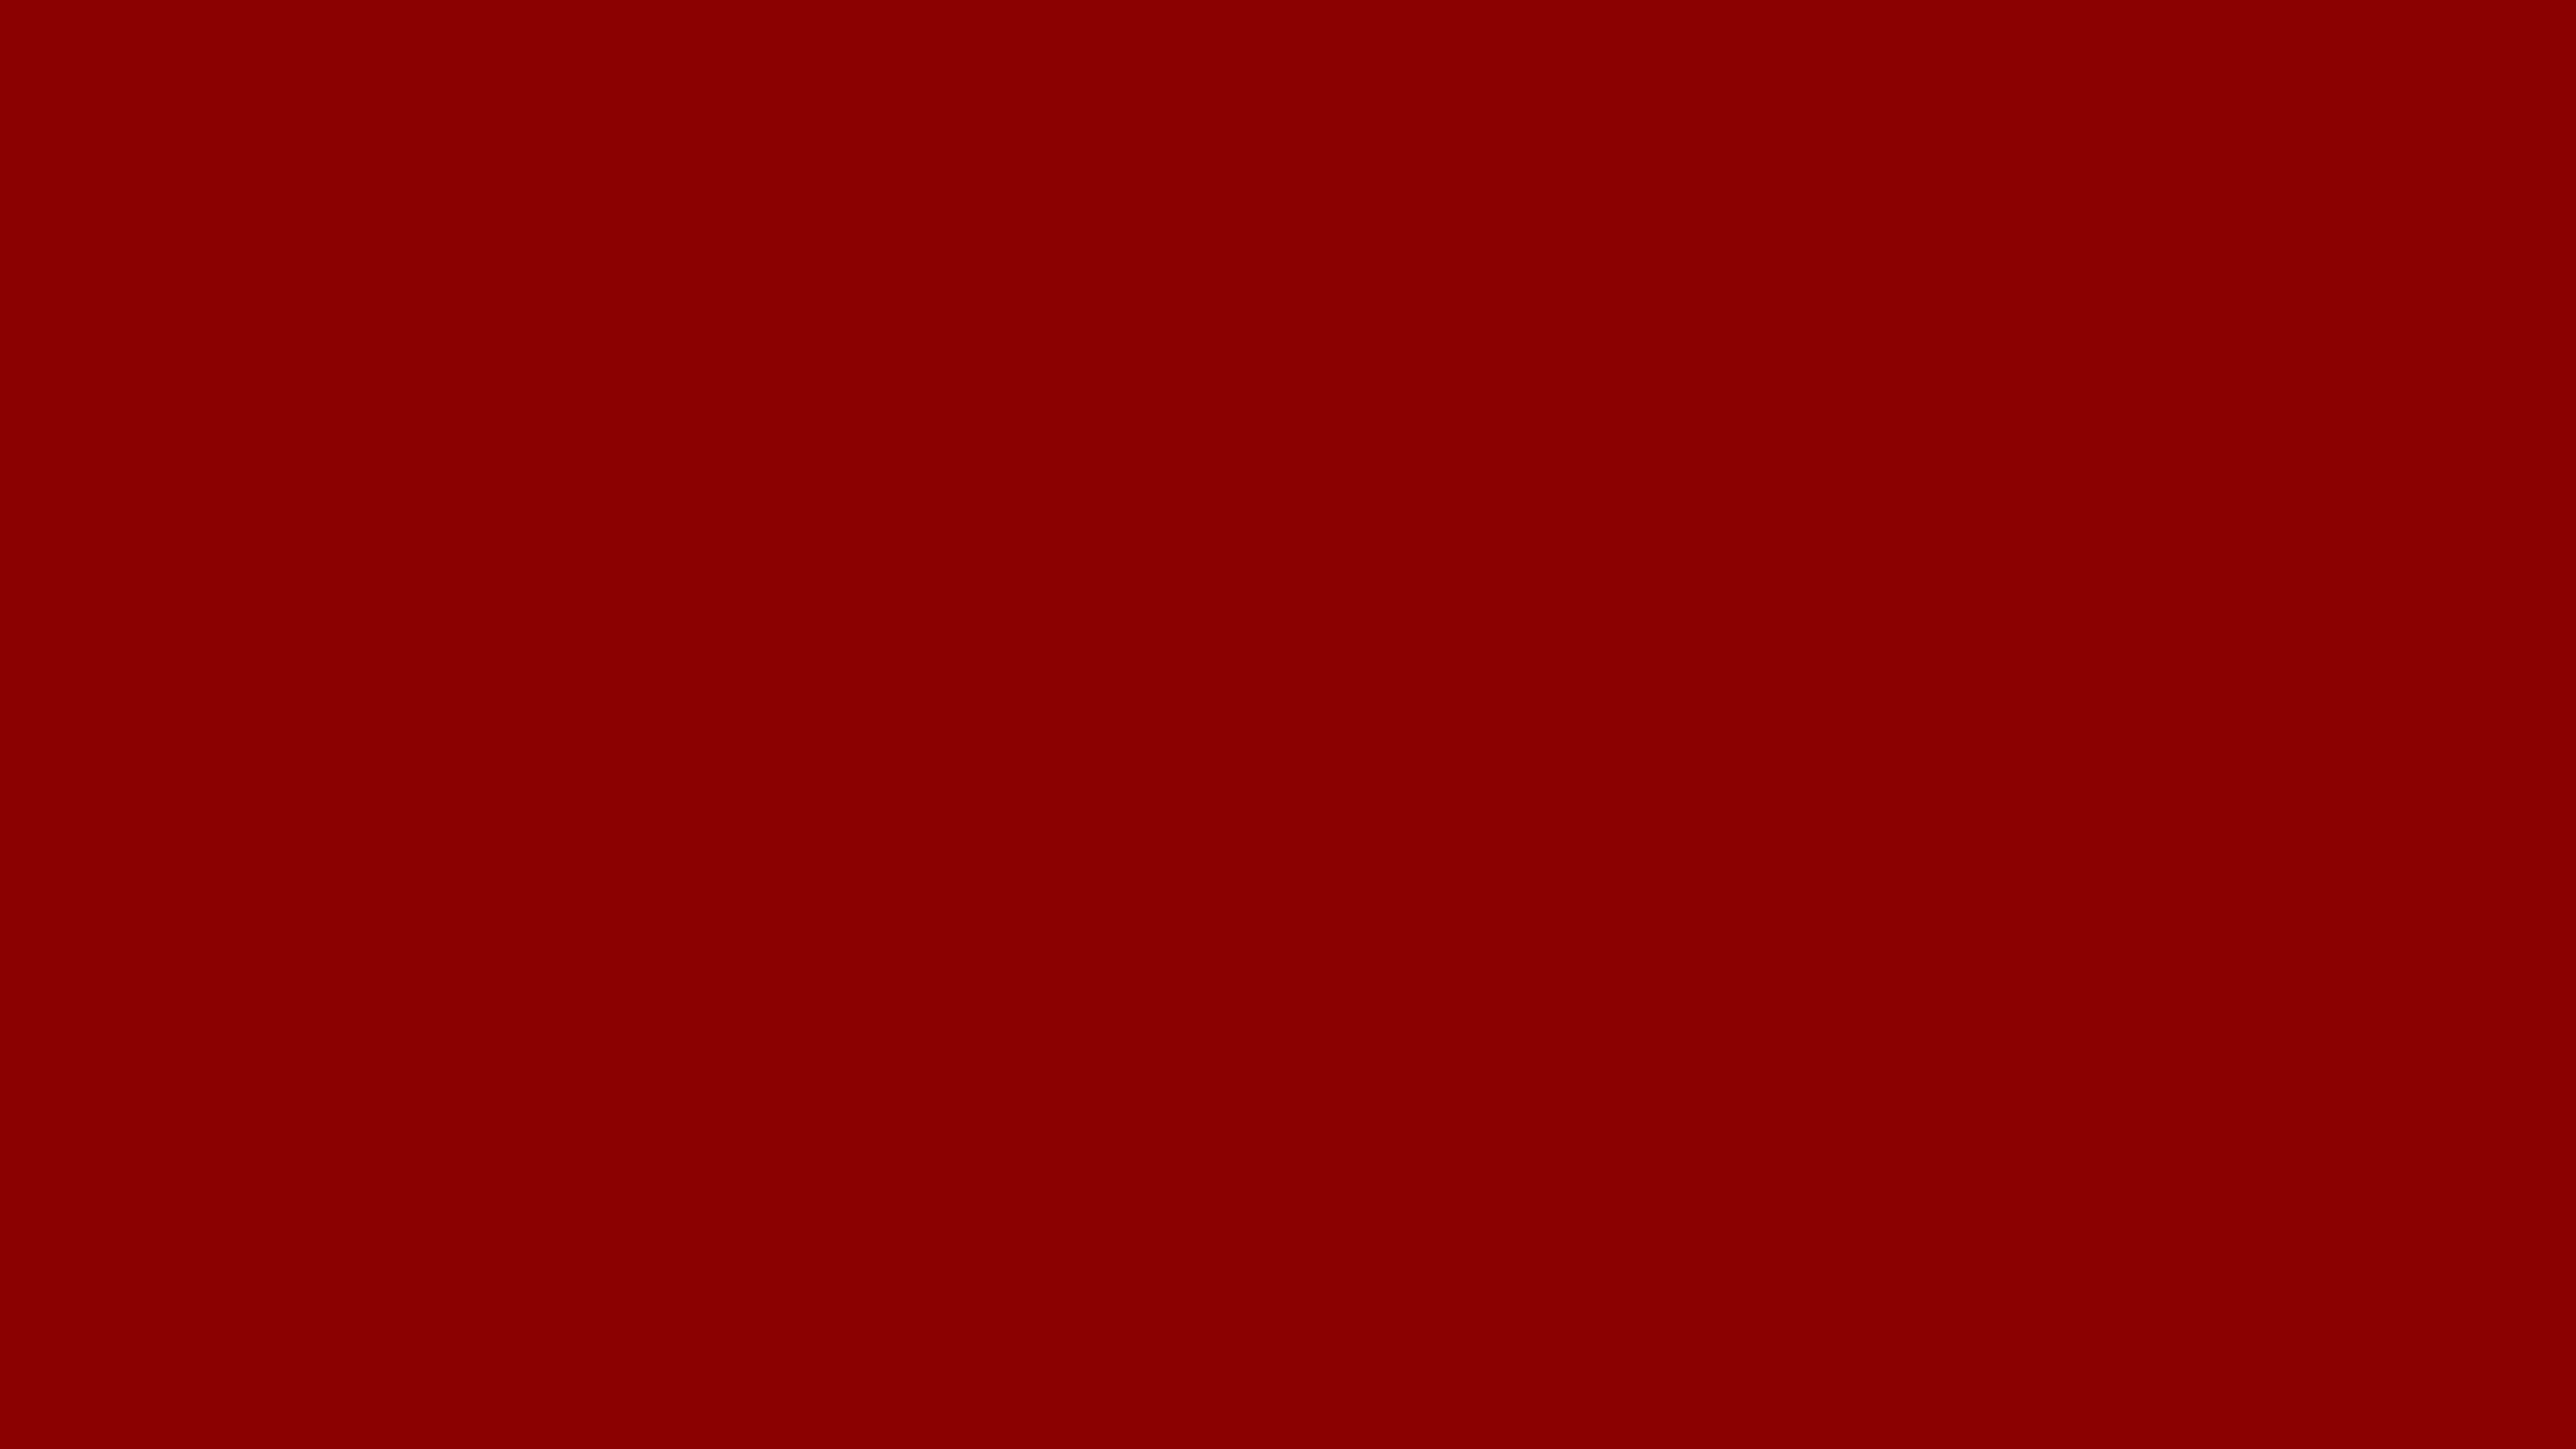 4096x2304 Dark Red Solid Color Background